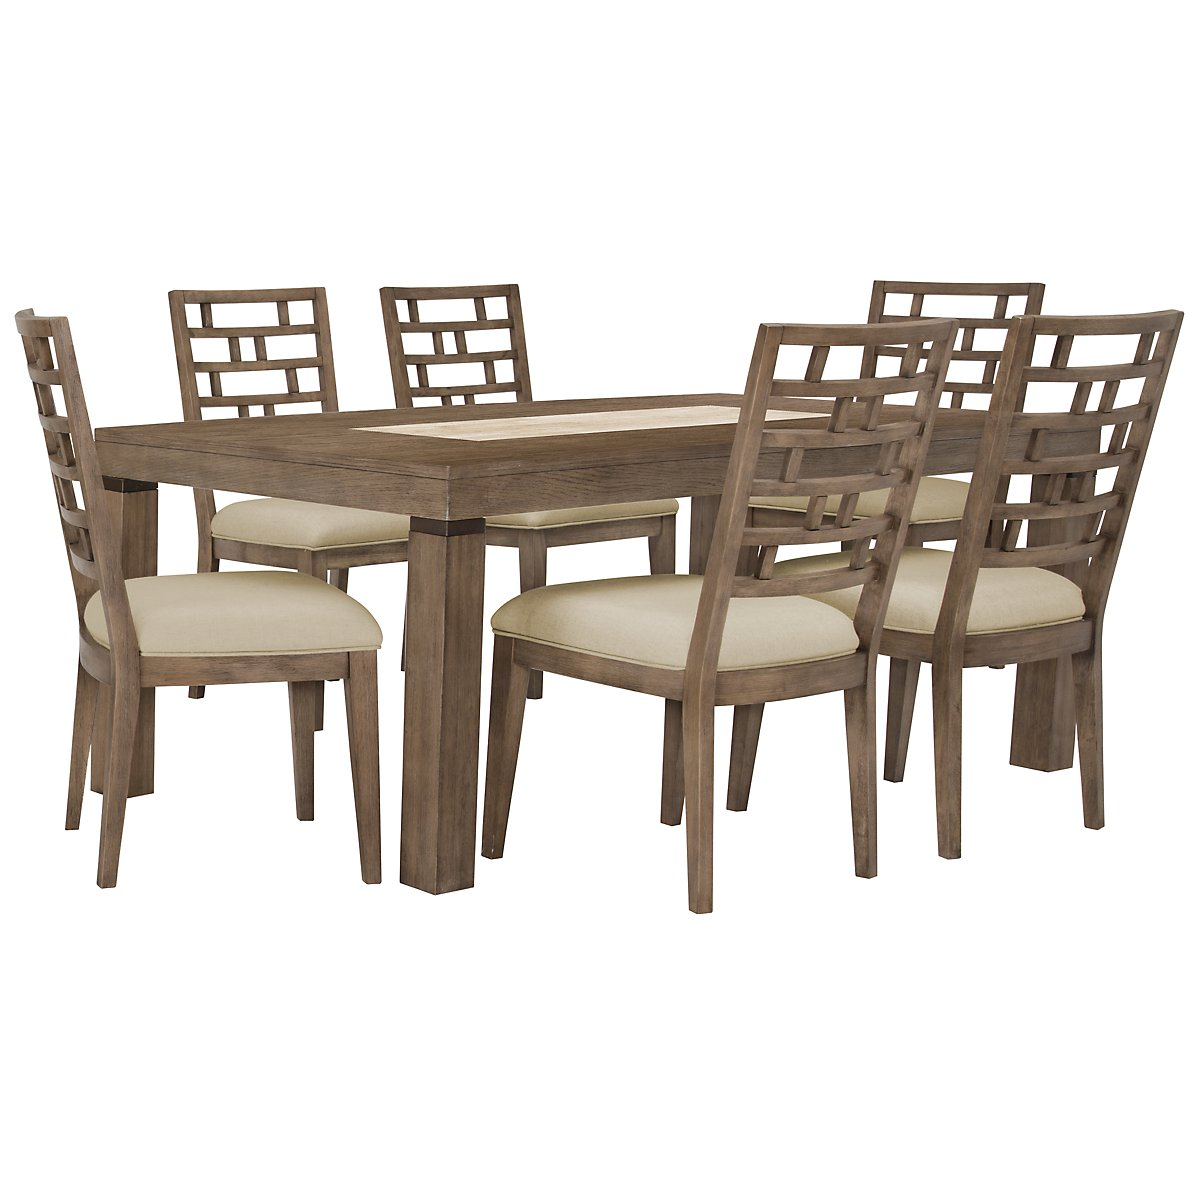 Mirabelle Light Tone Wood Table & 4 Wood Chairs